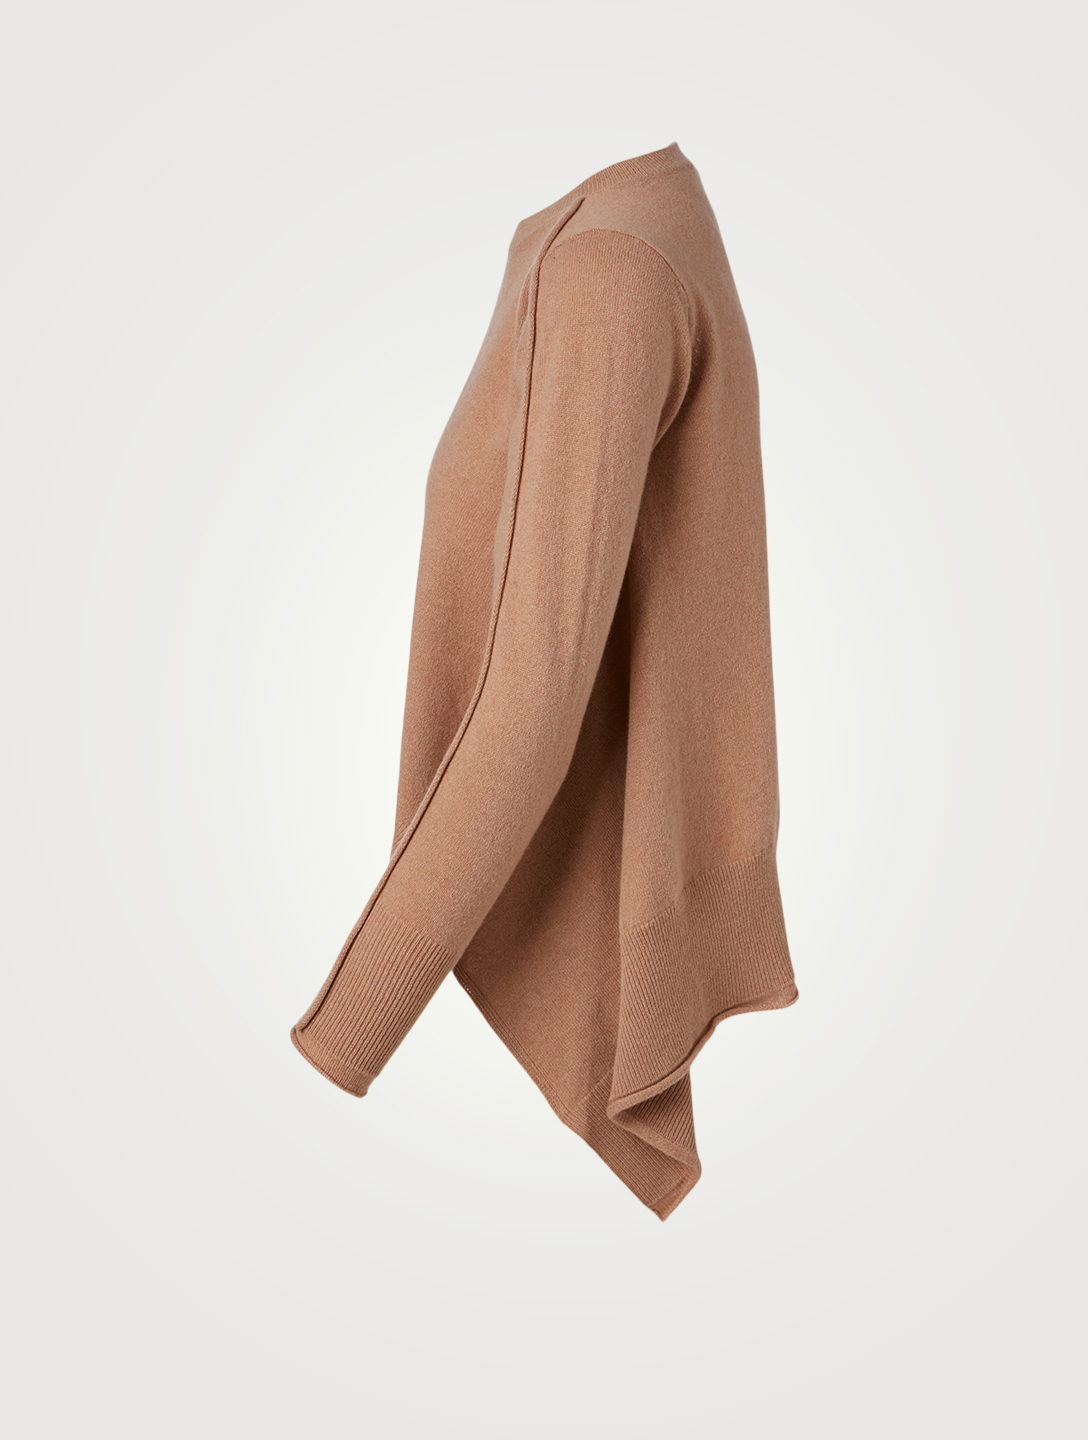 STELLA MCCARTNEY Cashmere And Wool Sweater Women's Beige